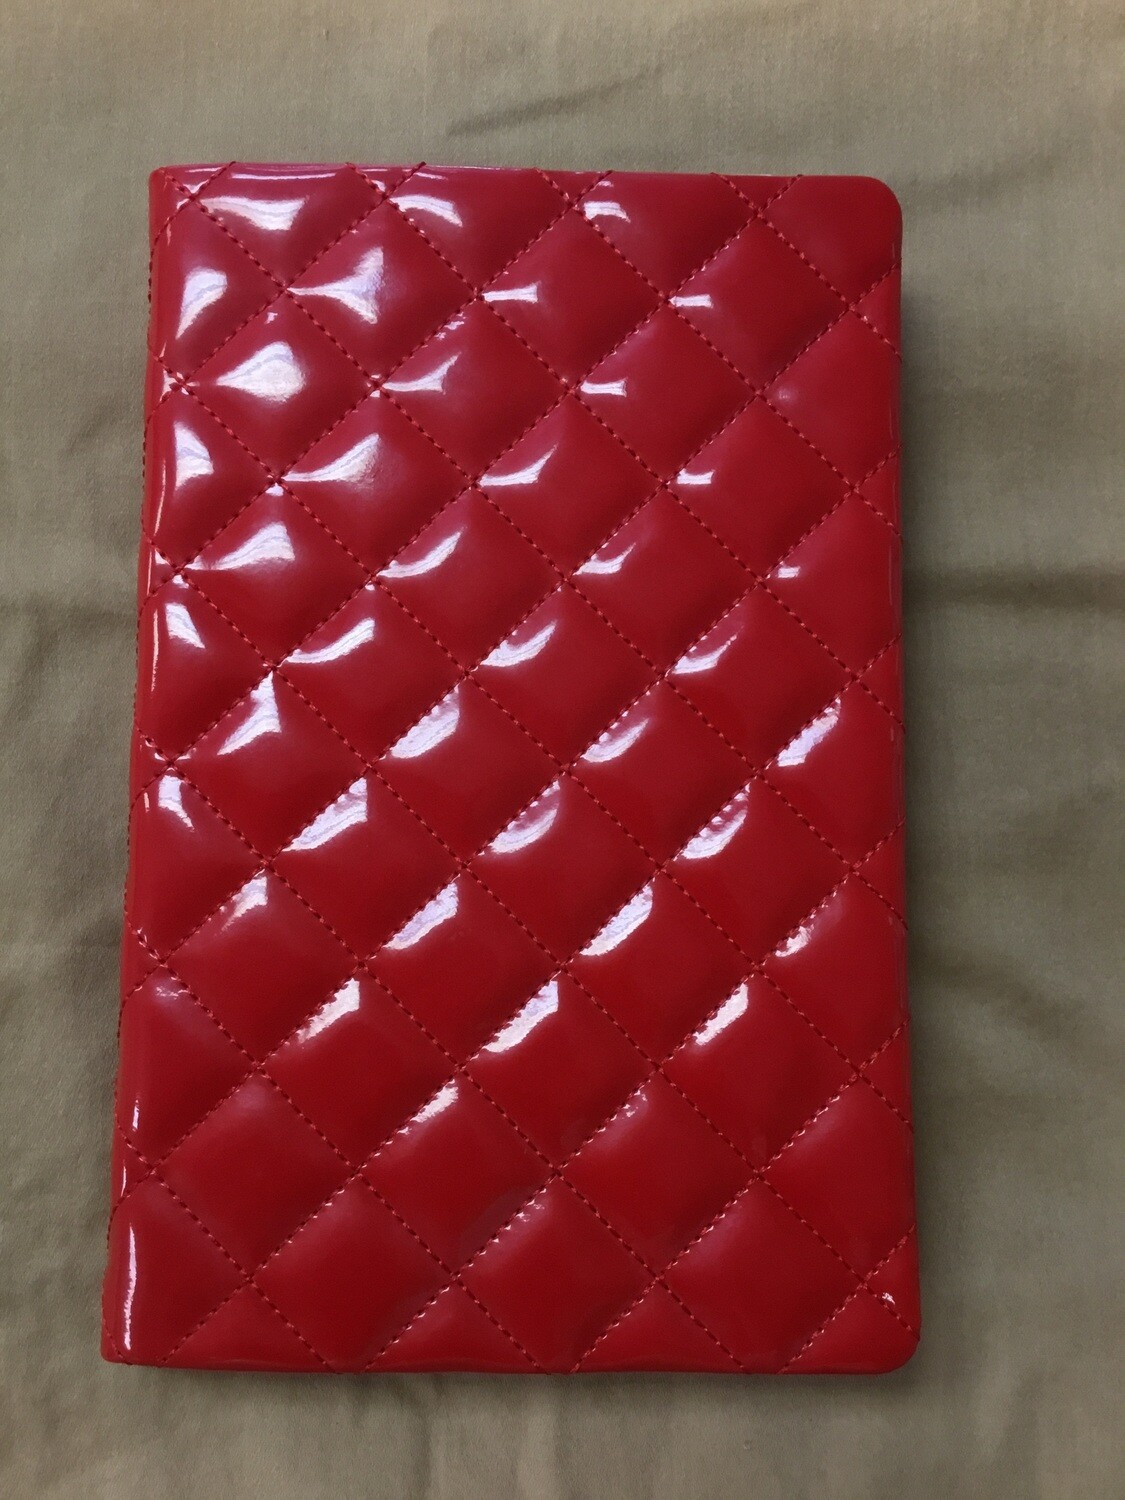 NIV Quilted Bible